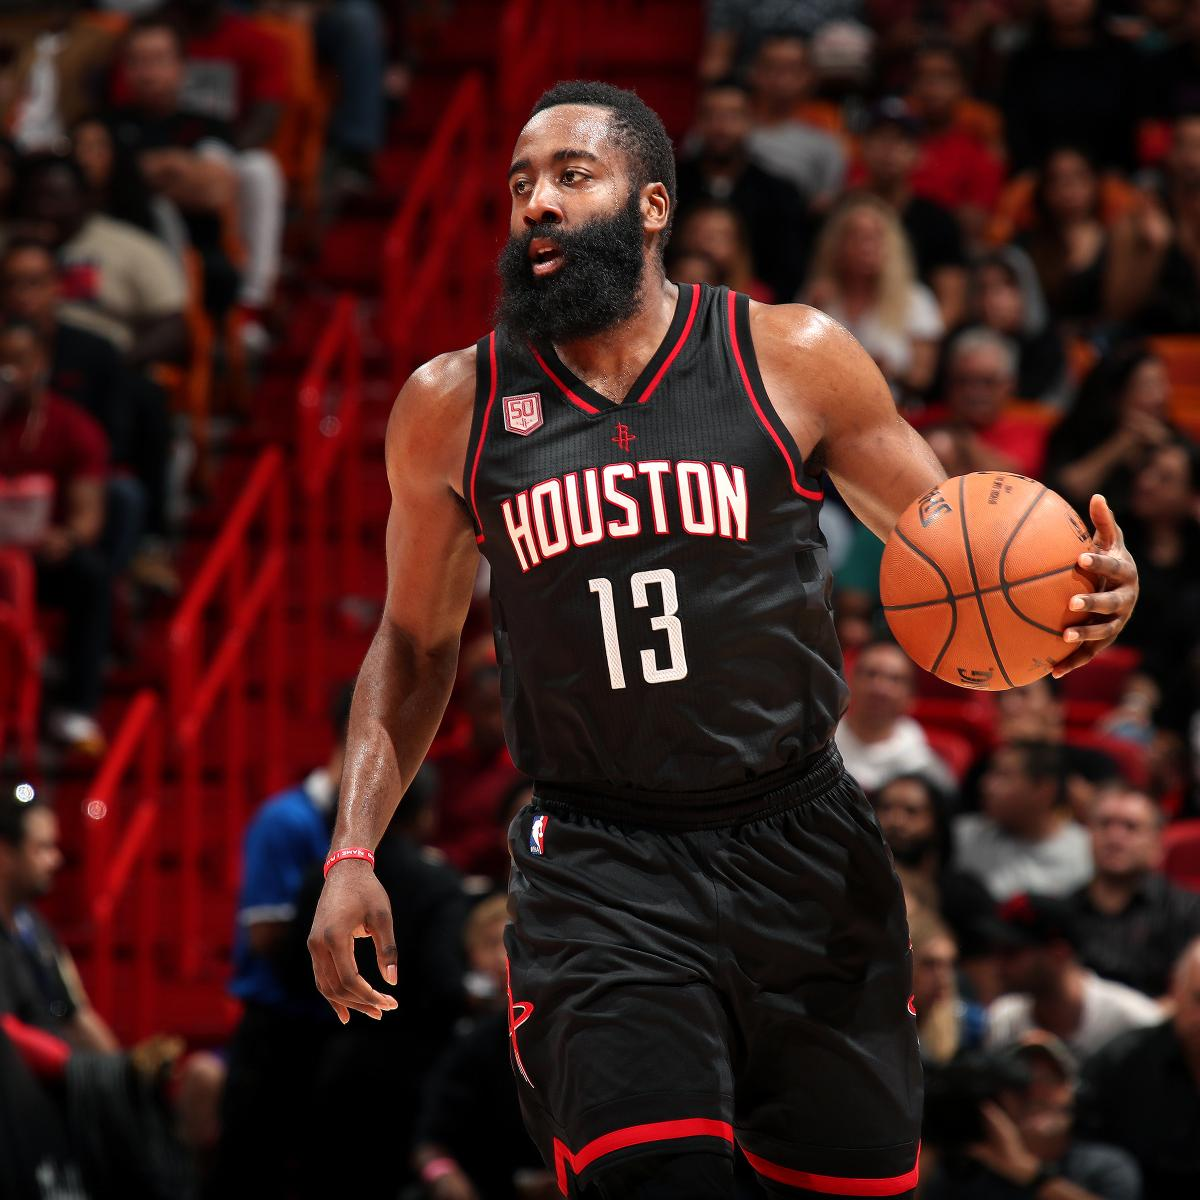 James Harden Points Last Night: James Harden Posted League-Leading 4th 40-Point Triple